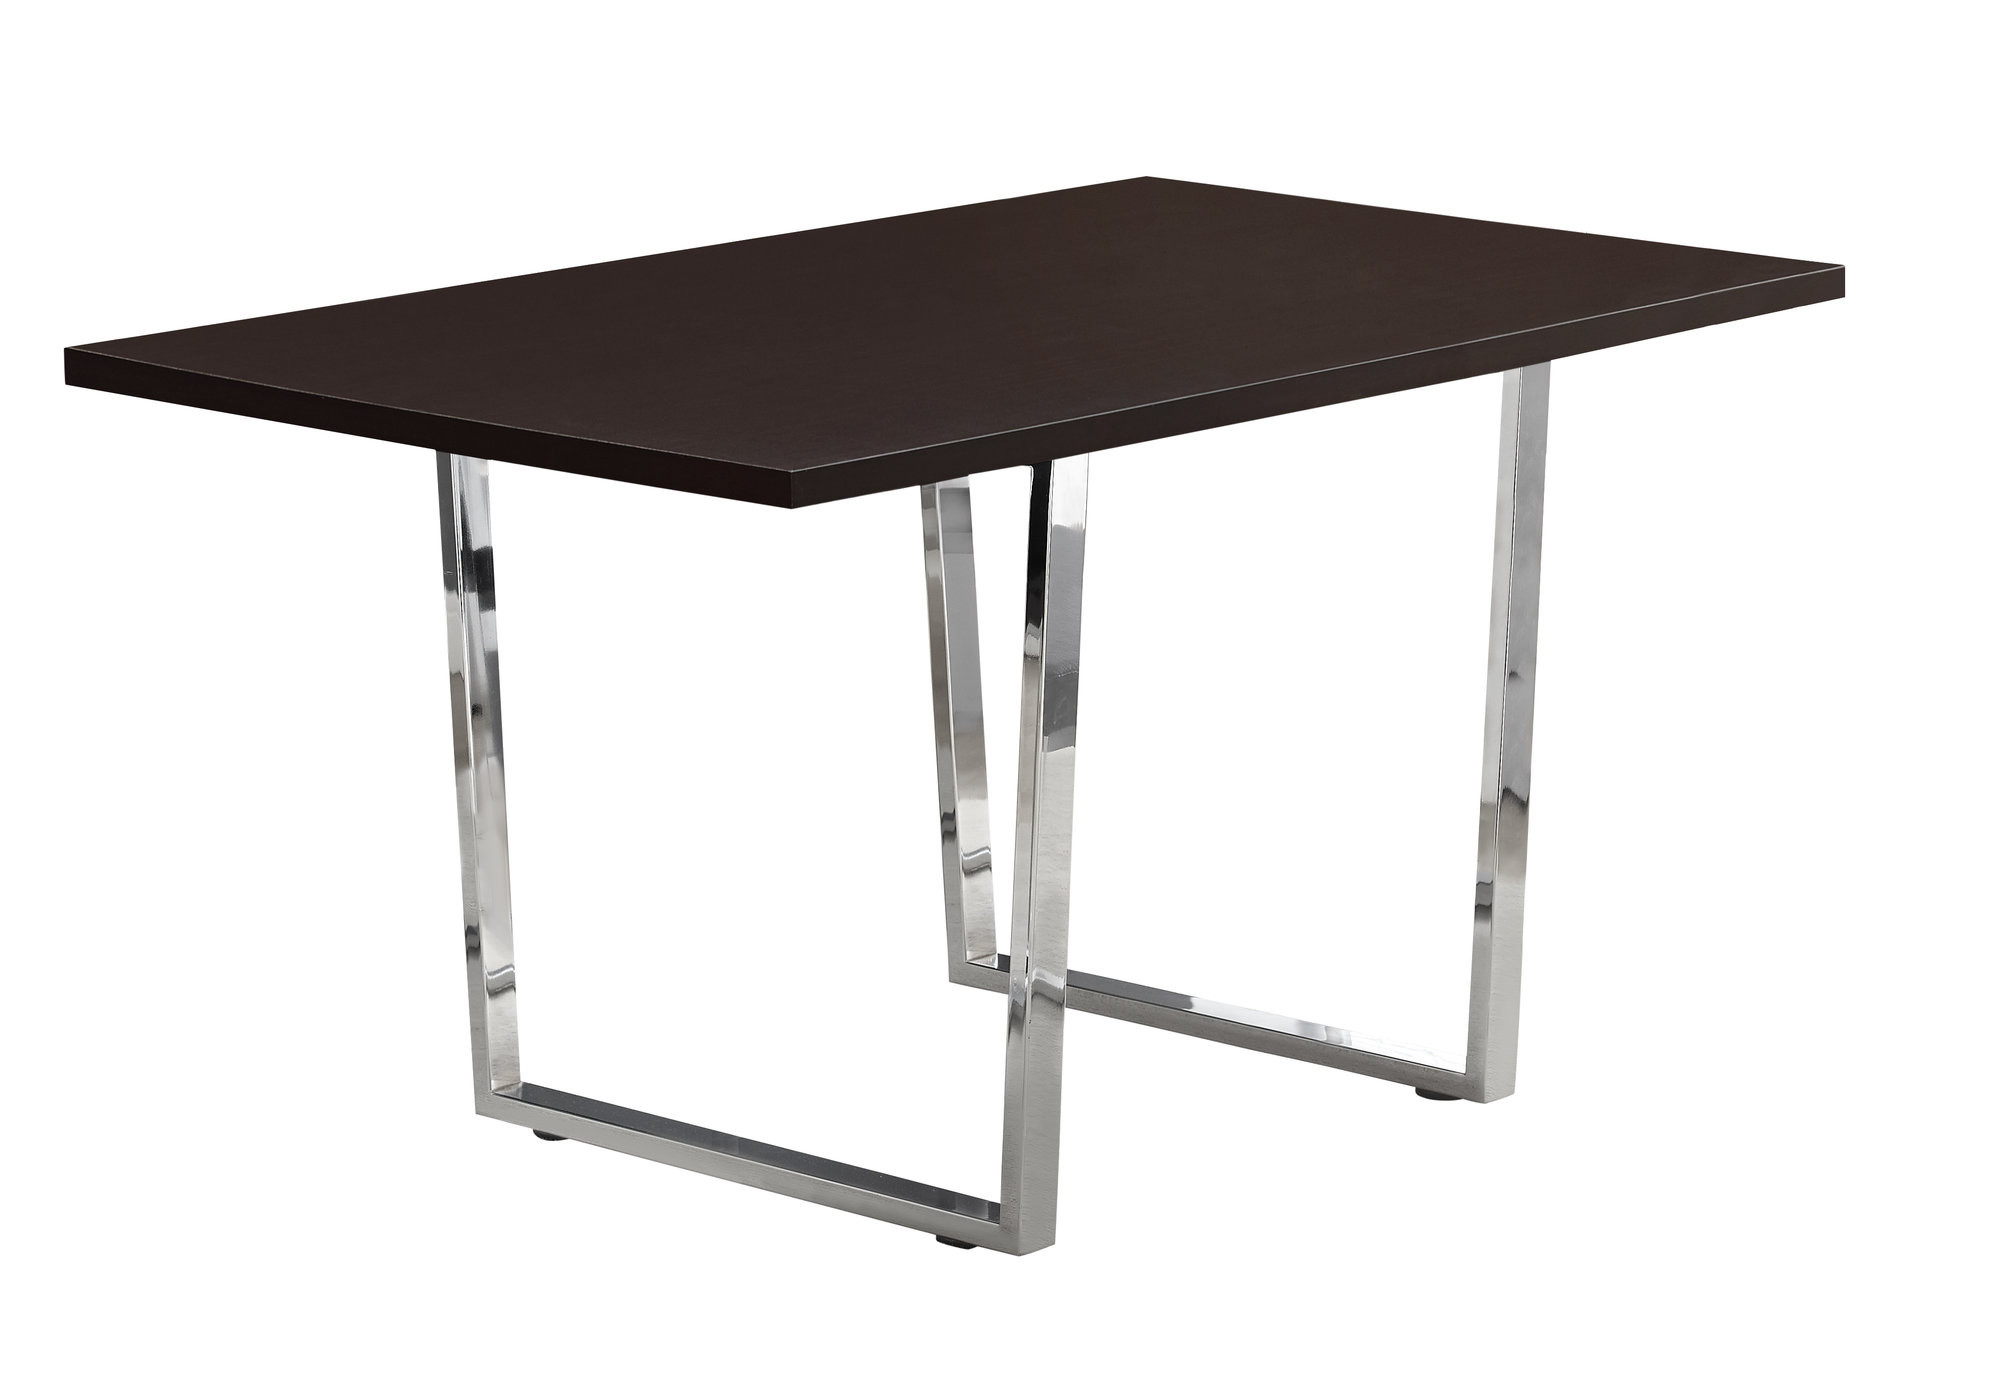 Details About Monarch Specialties I 1122 59 W Basic Modern Dining Table Cappuccino